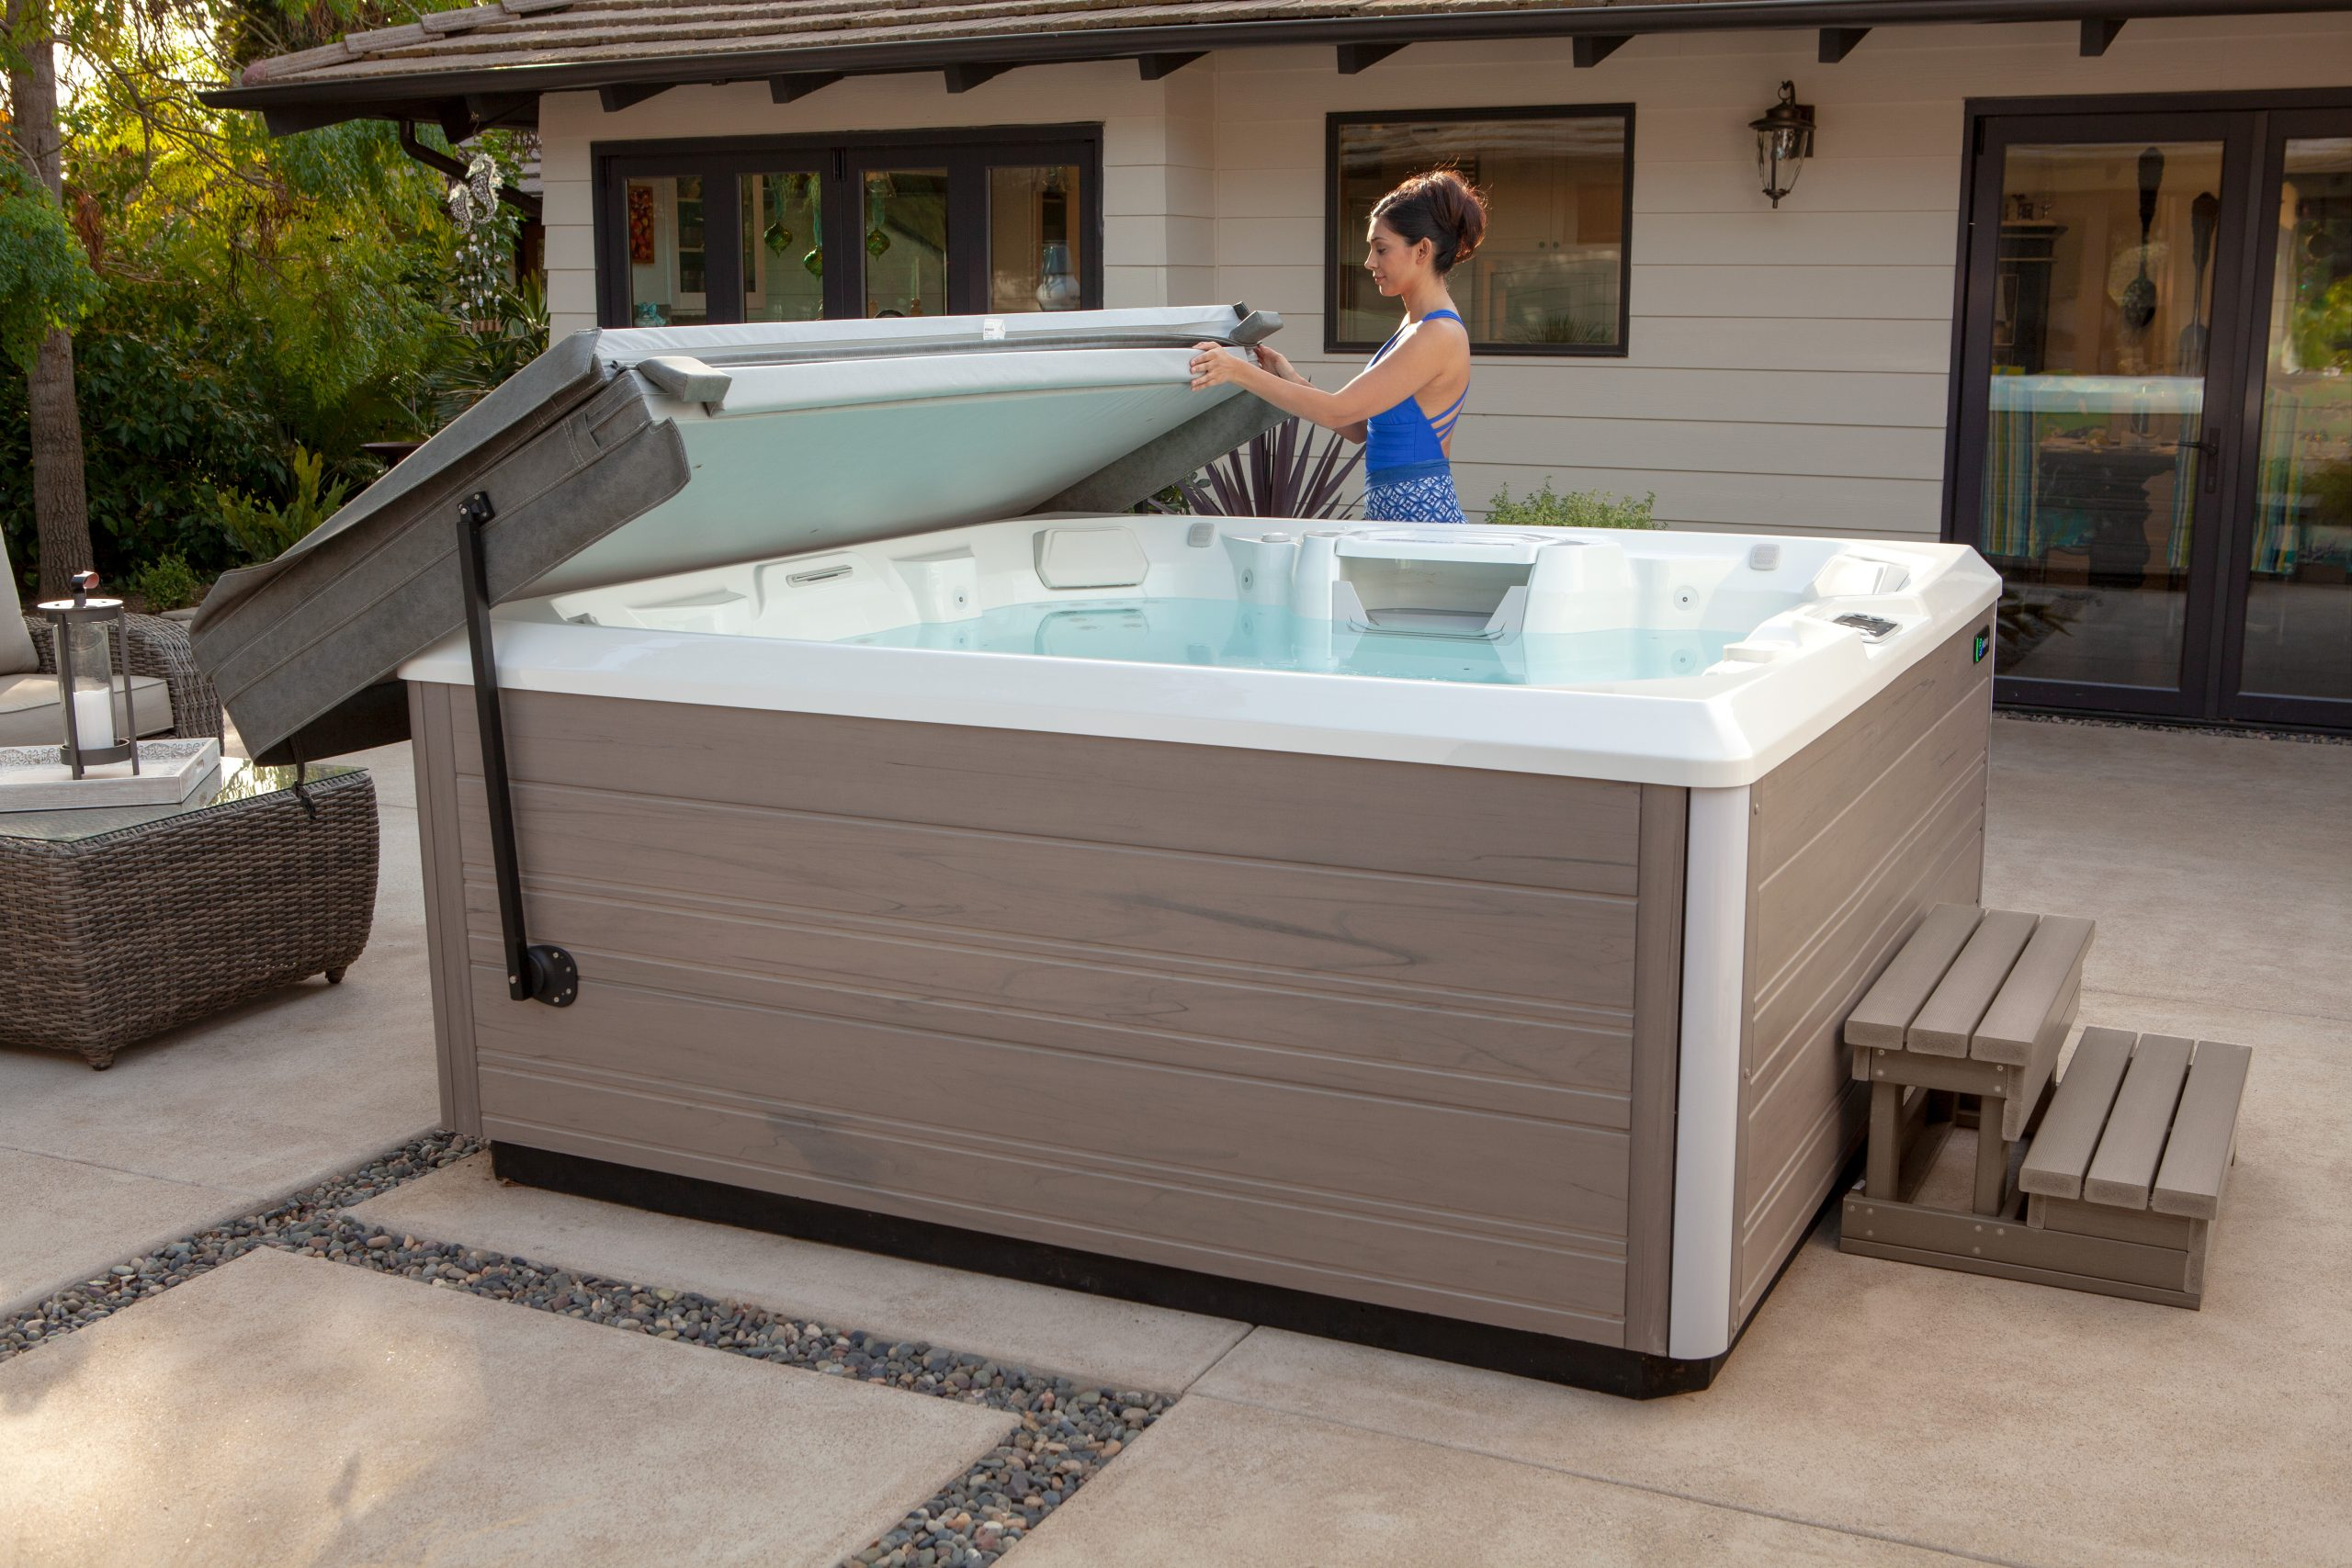 Accessories to Enhance Your Outdoor Hot Tub